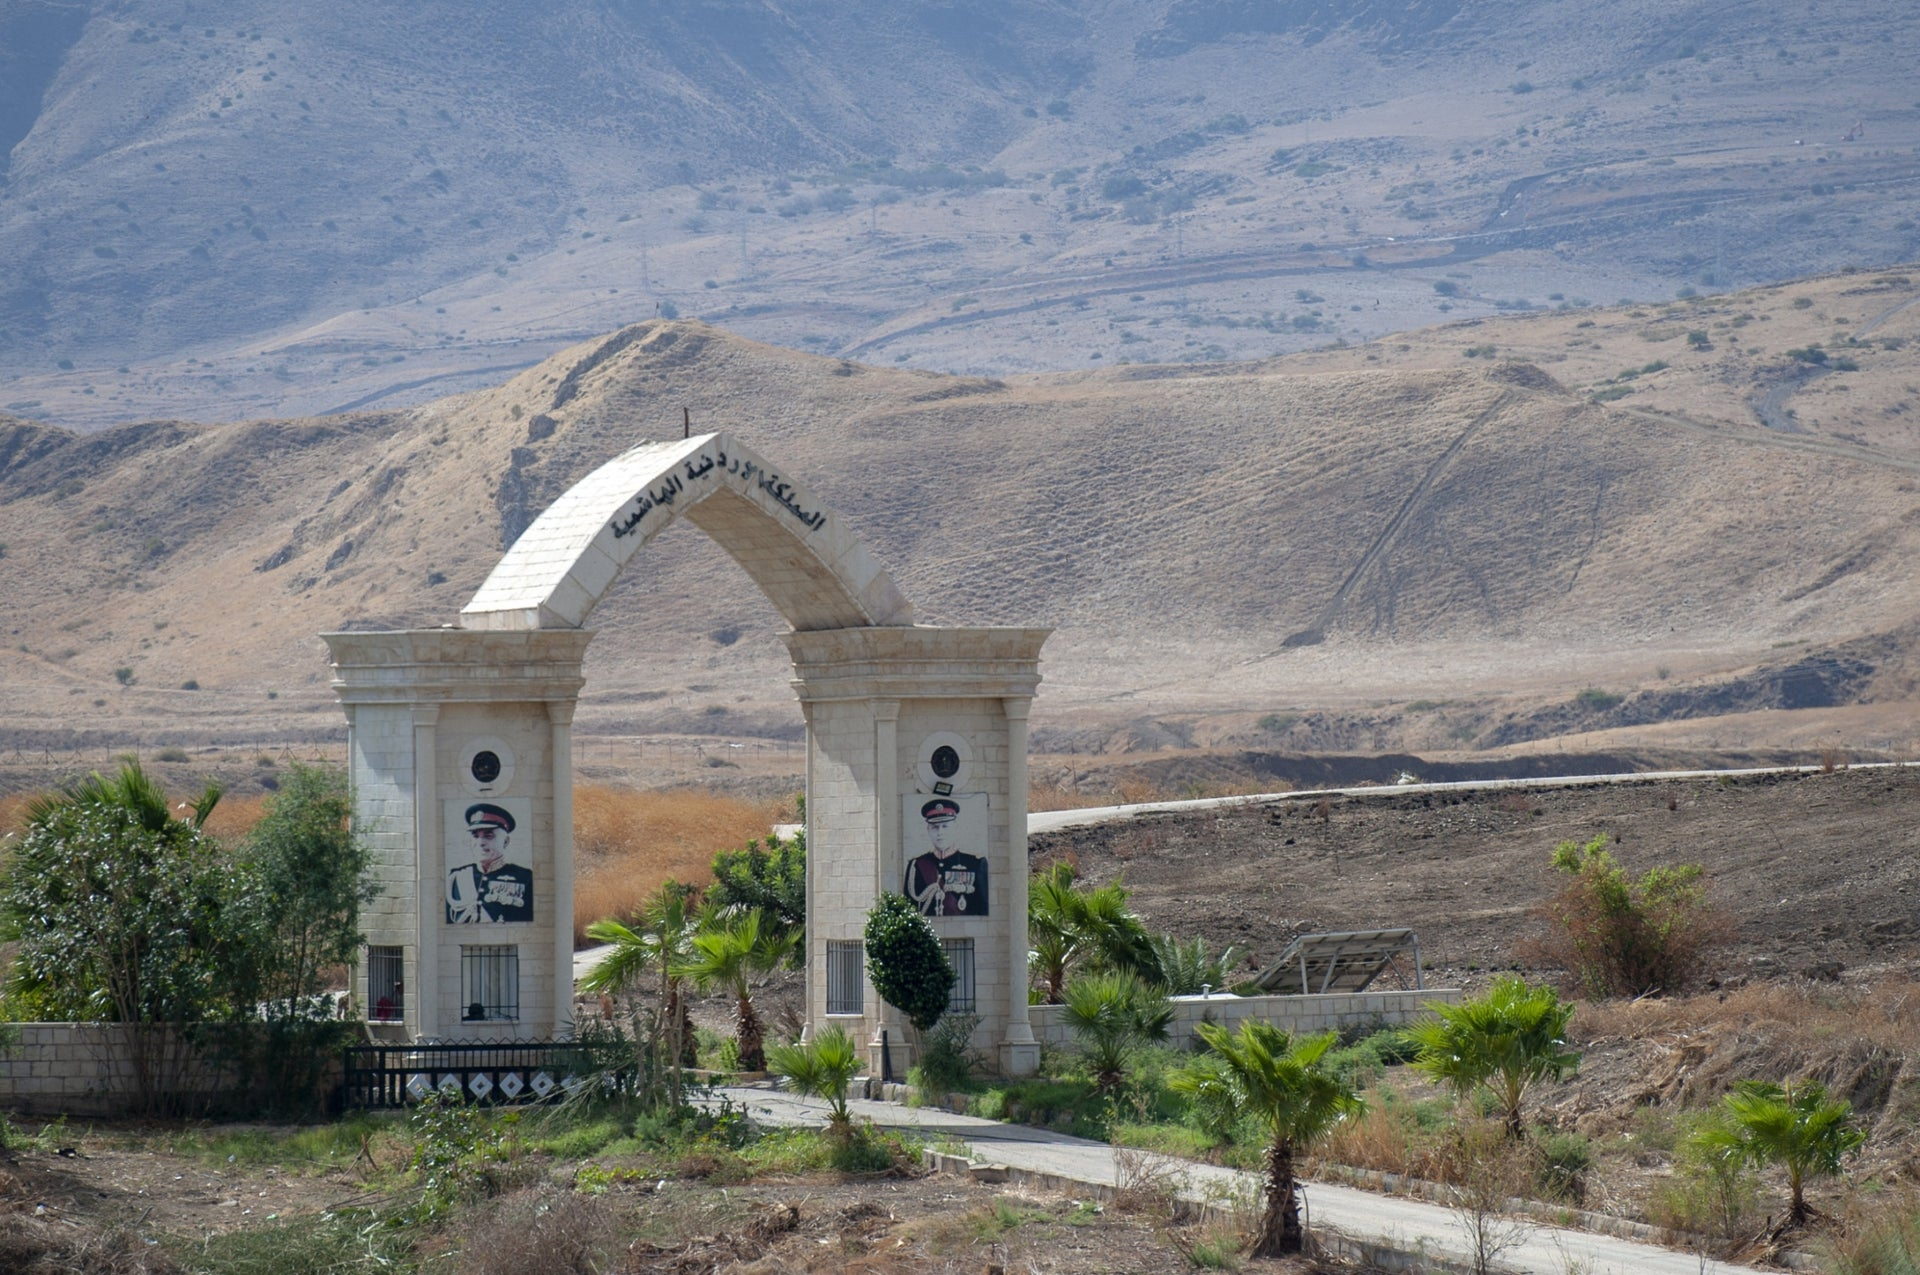 The gate built on the Island of Peace by the Jordanians a few years ago, including portraits of King Abdullah and the late King Hussein.